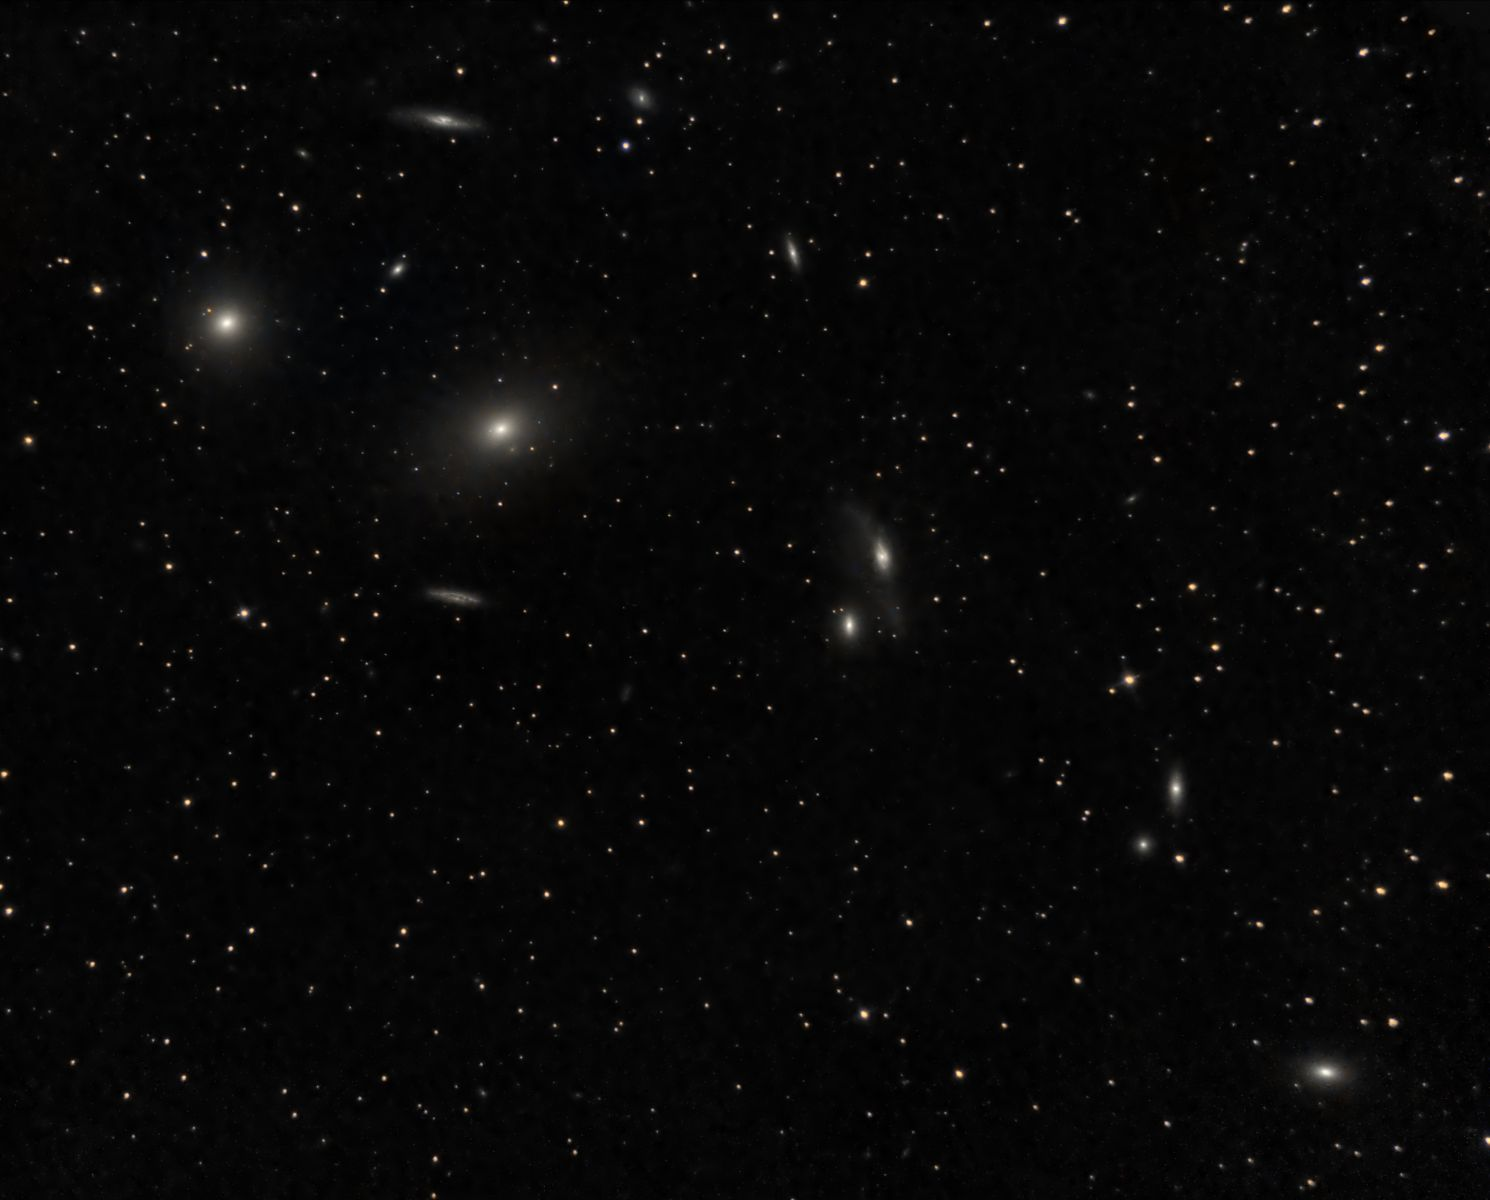 Markarian's chain of galaxies in the Virgo cluster